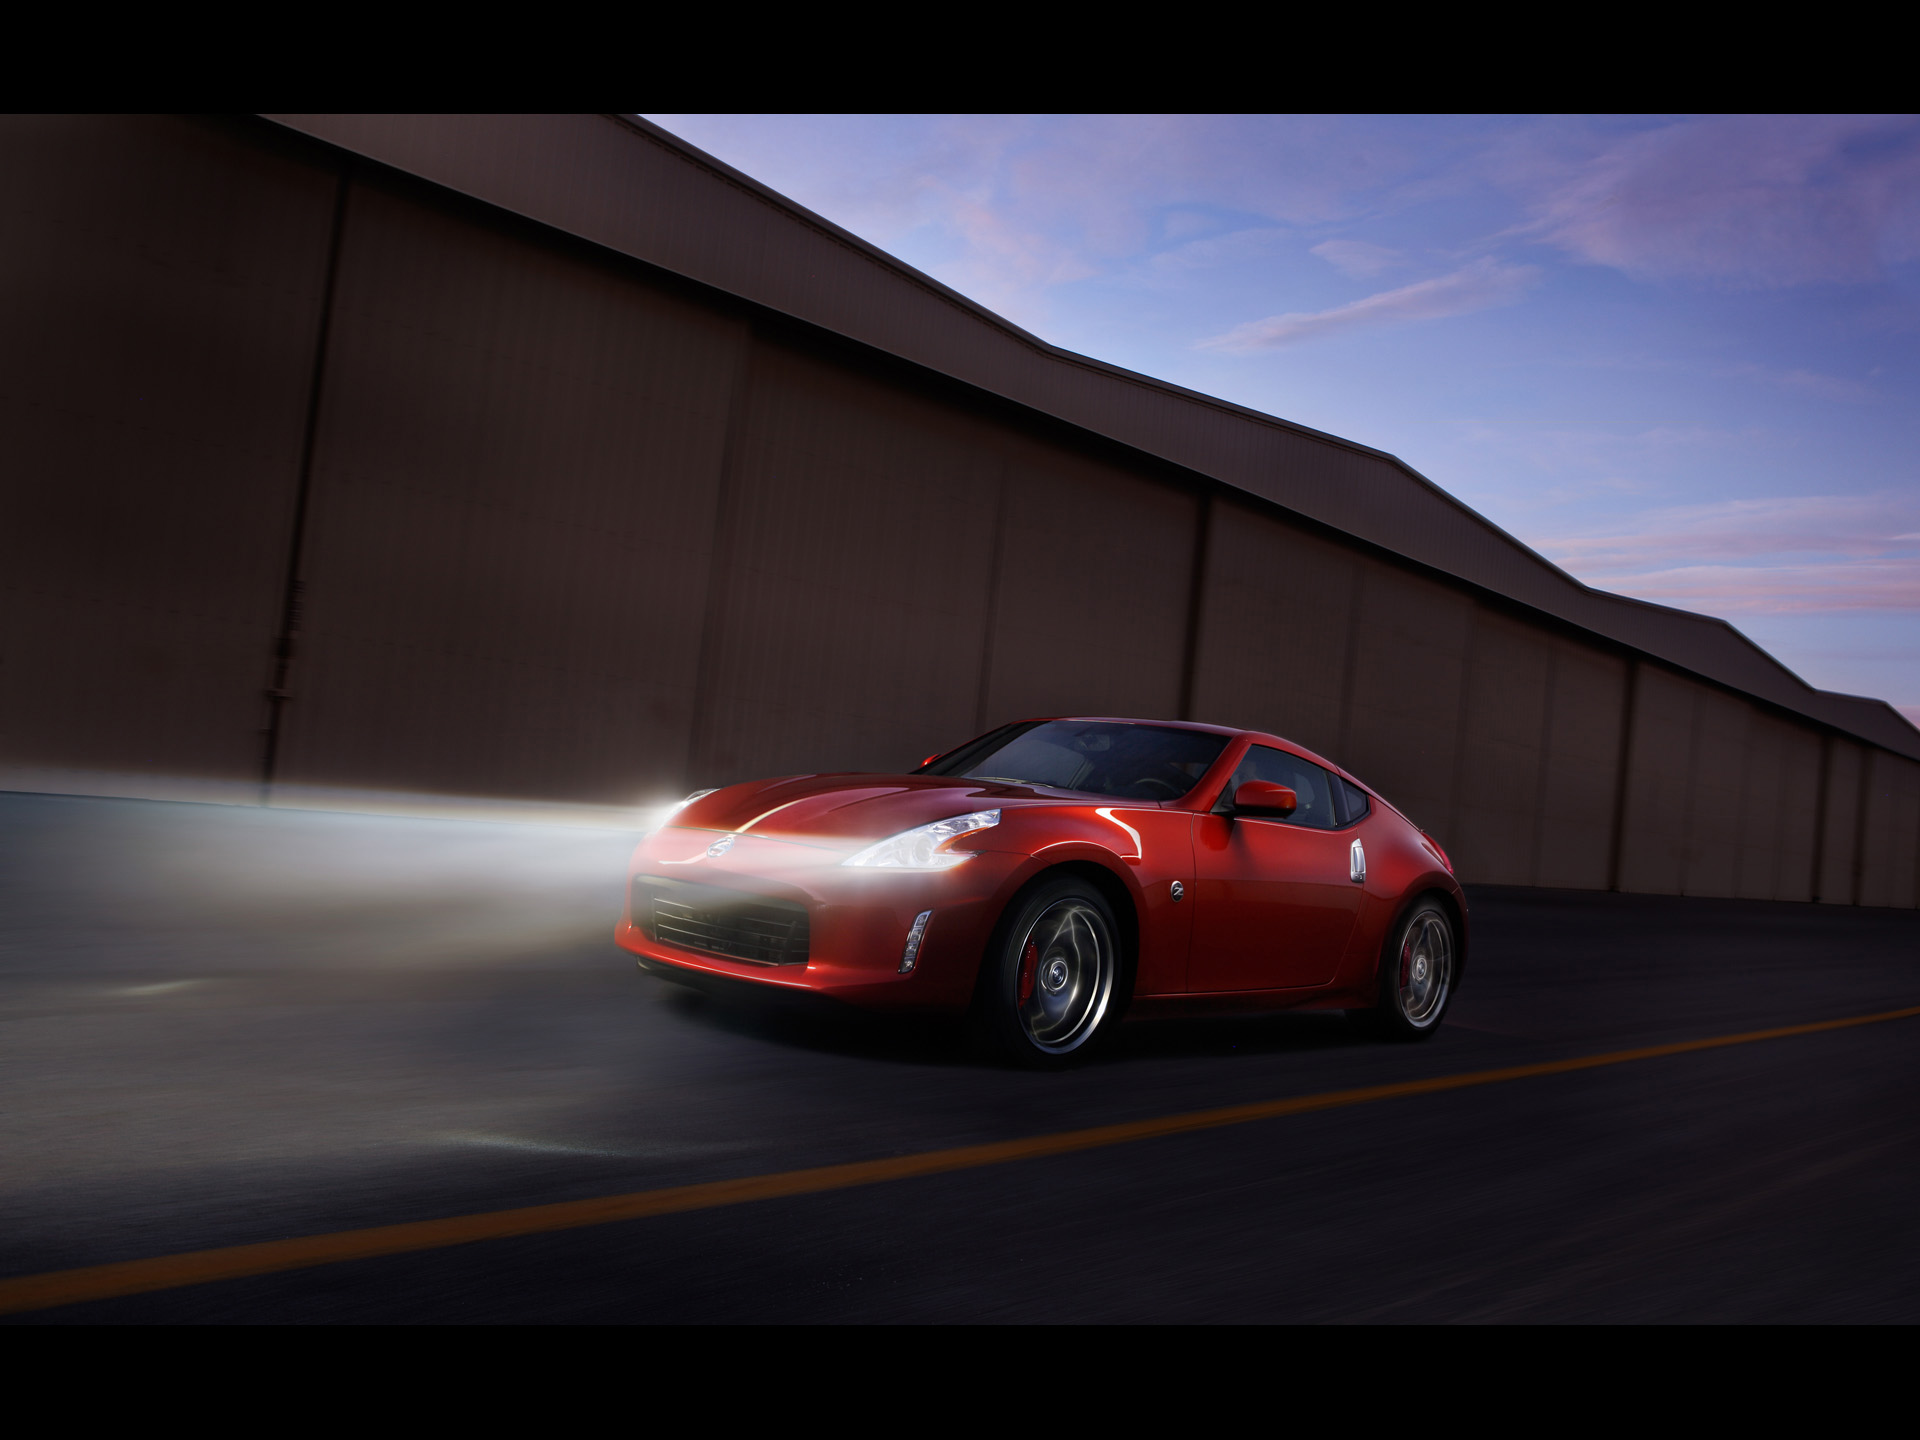 Nissan 370z Magma Red Night Wallpapers